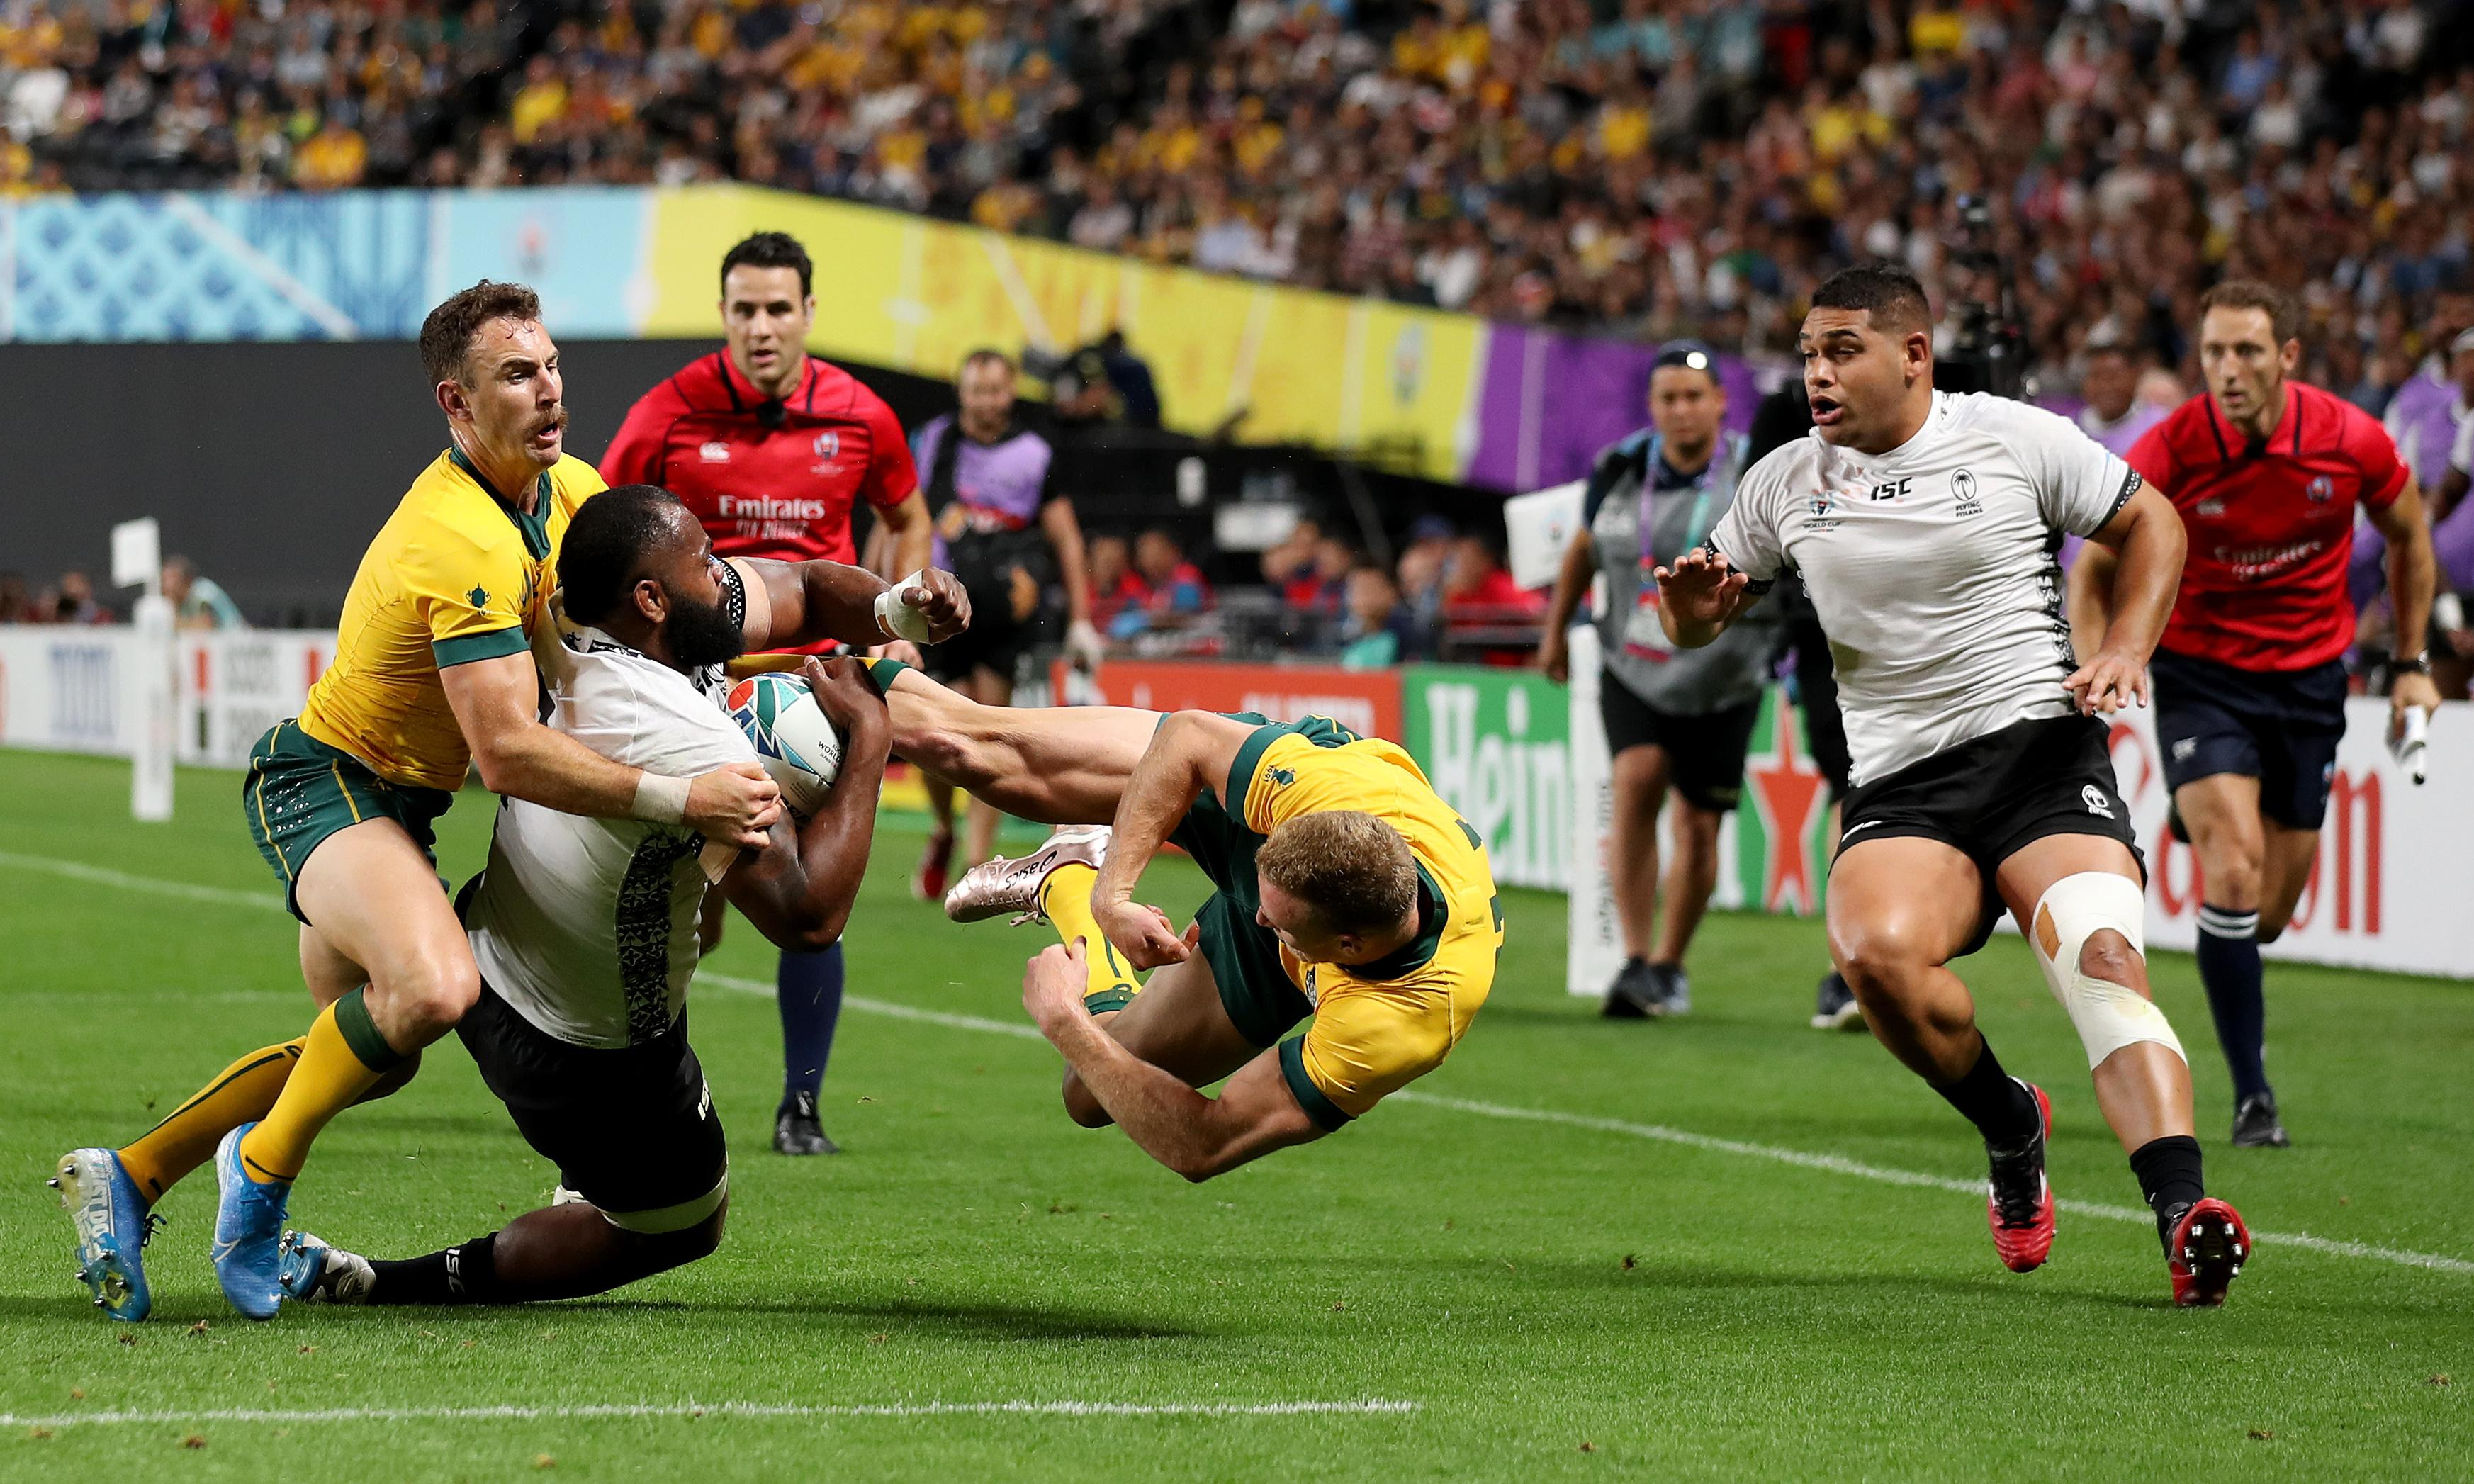 Australia wing Reece Hodge cited for tackle on Fiji's Peceli Yato